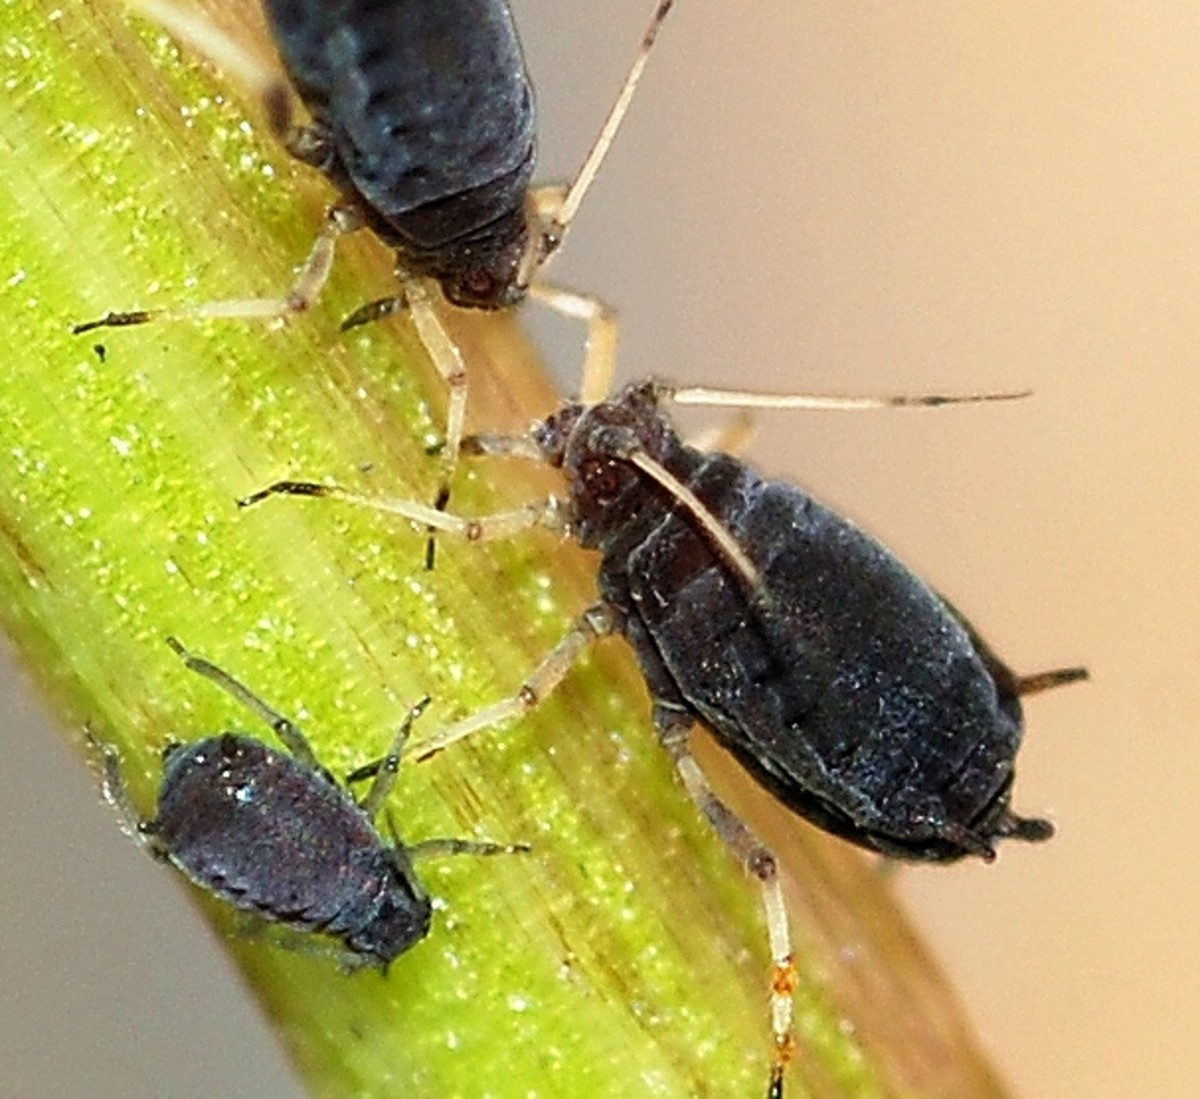 Homemade Organic Aphid Spray Recipe